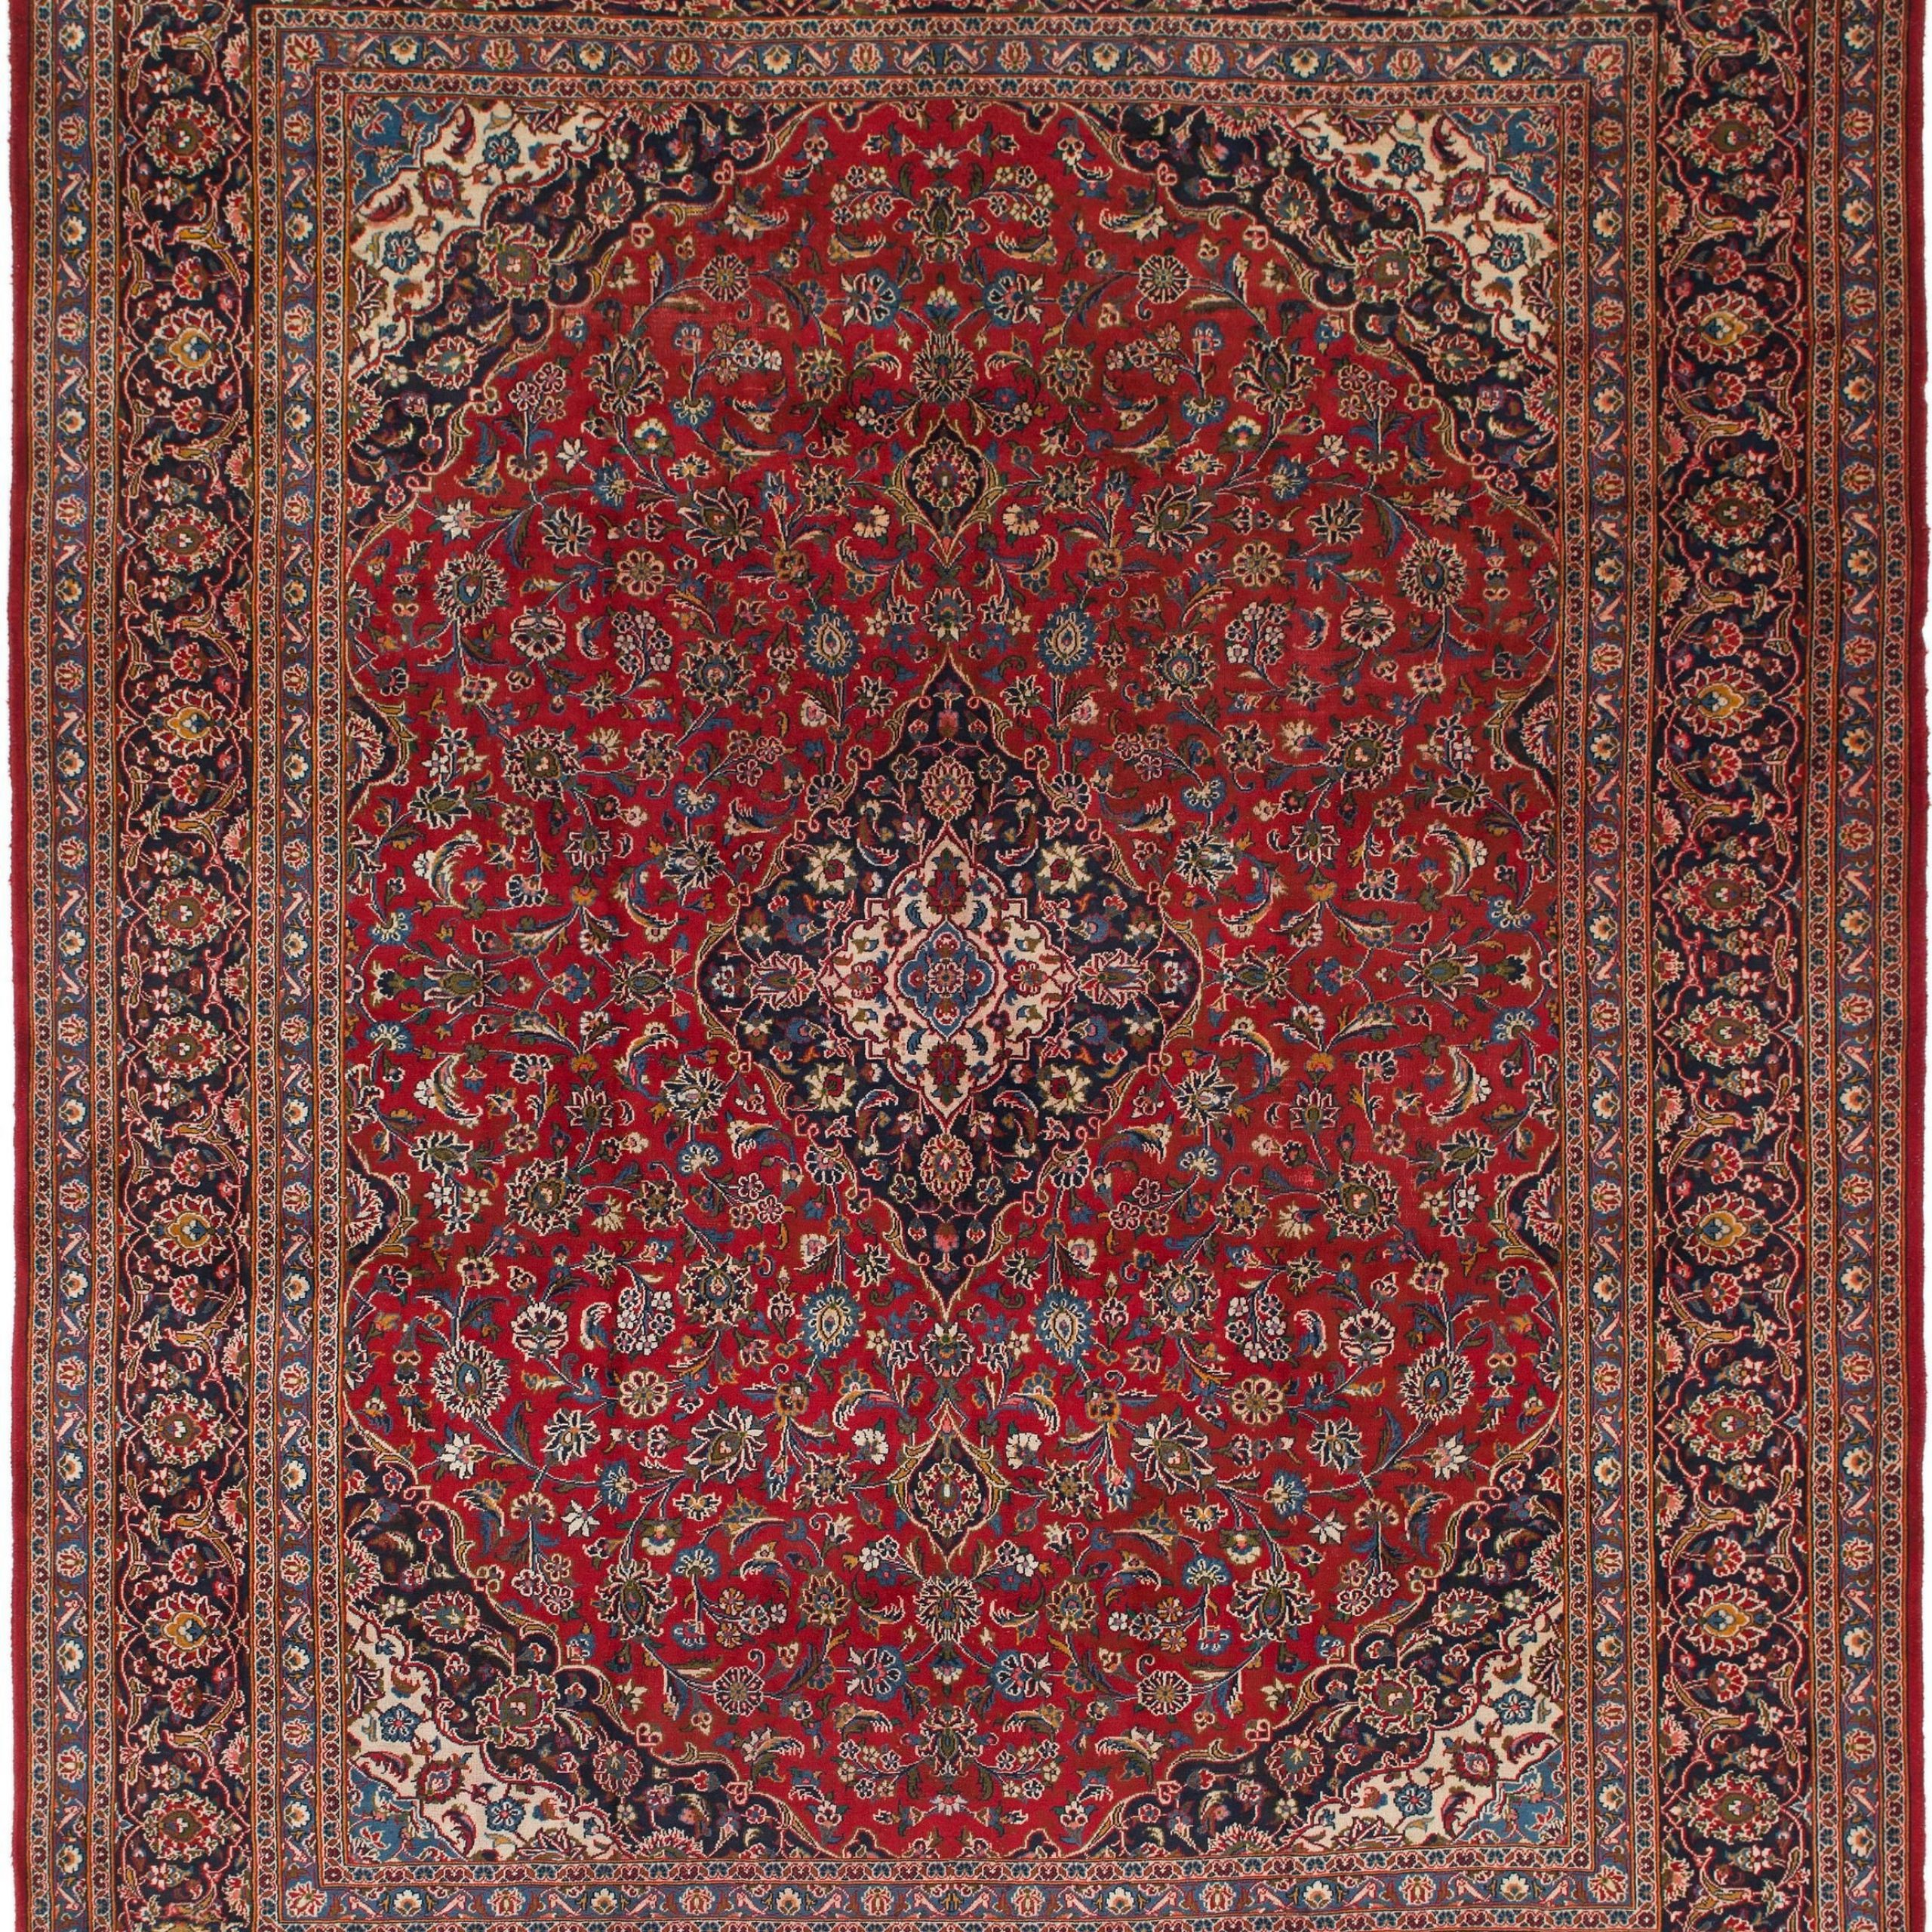 Awe-inspiring Room Size Rugs 9x12 On Beaut Red 9 9 X 12 4 Mashad Persian Rug Affiliate Red On Room Size Rugs 9x12